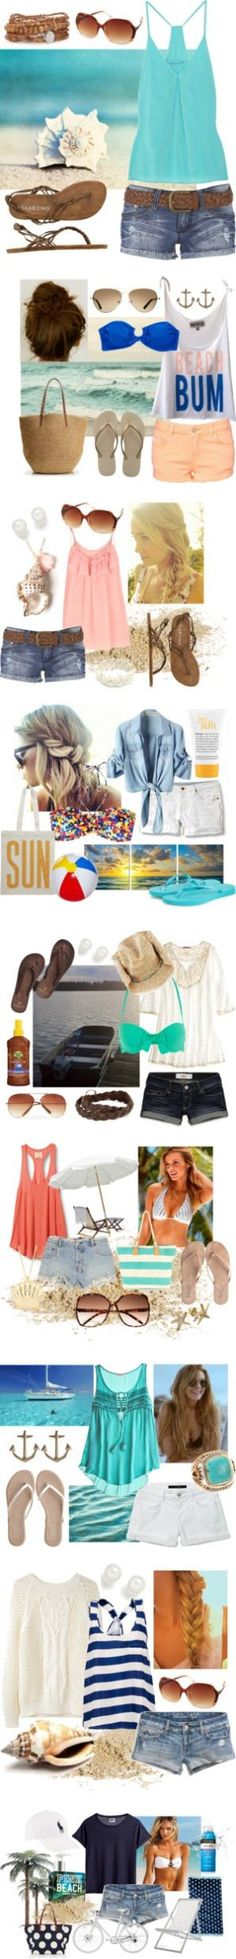 totally wearable summer outfit ideas to brighten up your carefree summer days..